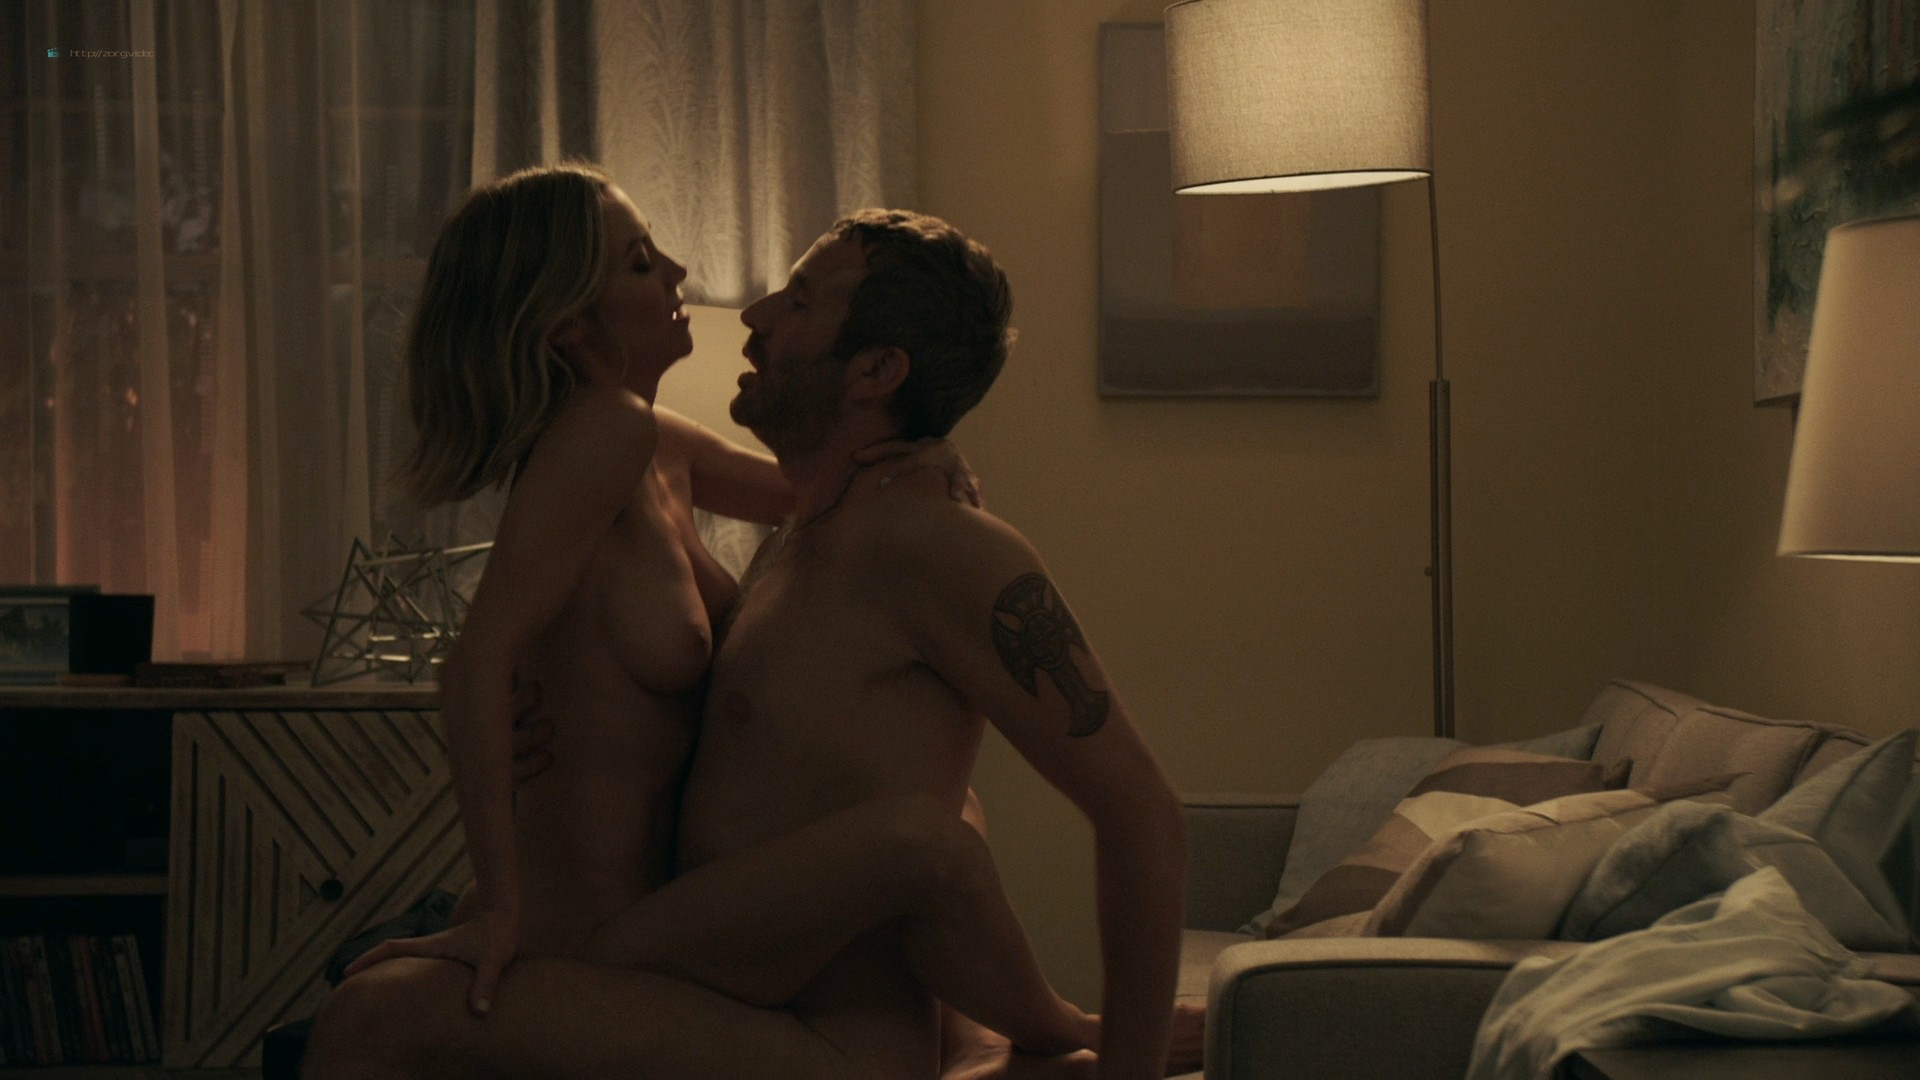 Megan Stevenson nude hot sex - Get Shorty (2019) s3e3 1080p (5)